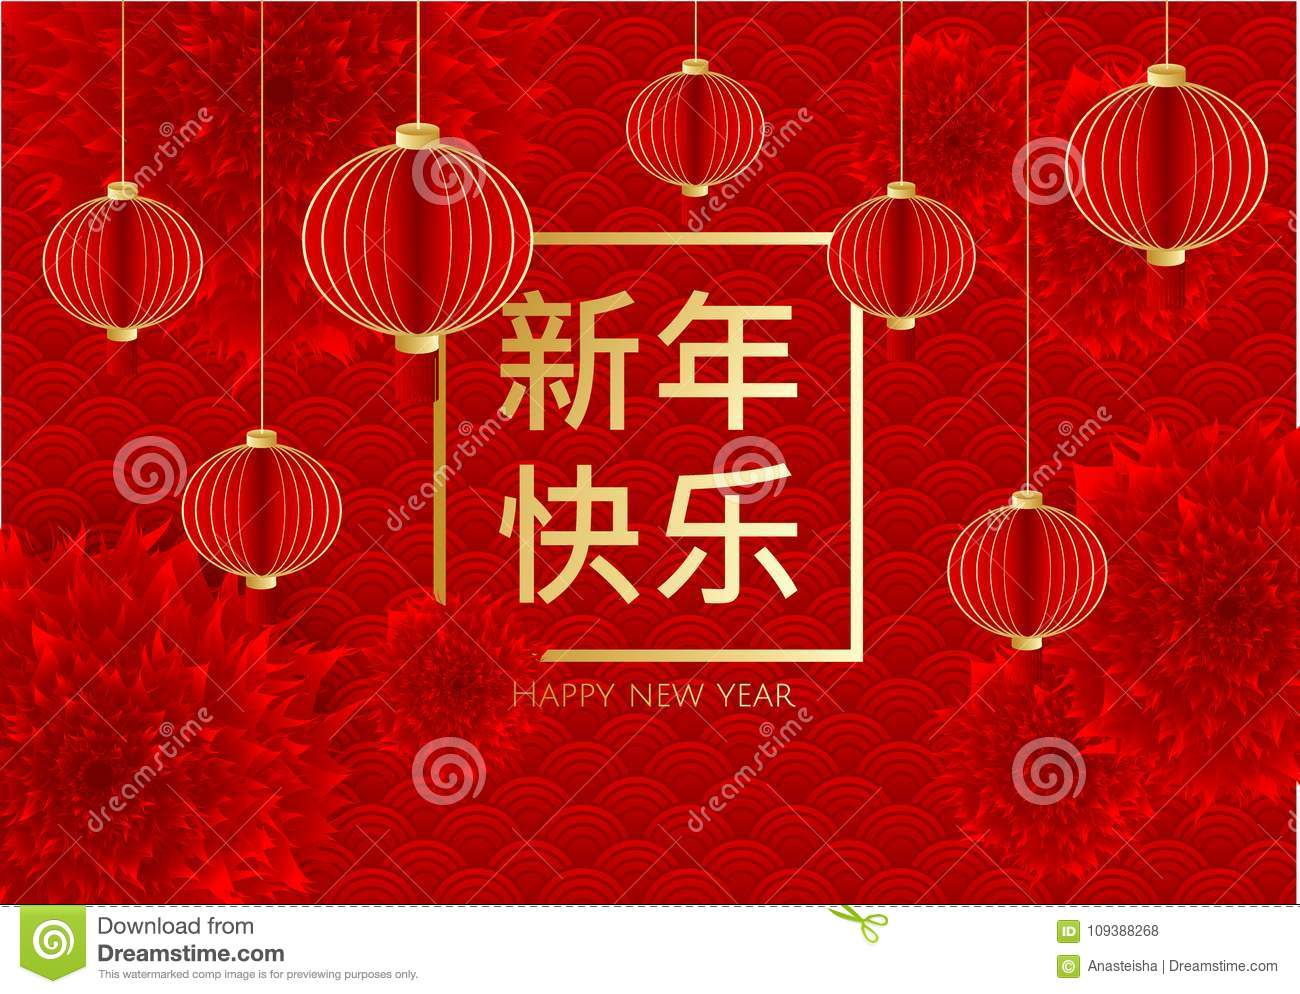 Happy Chinese New Year Greeting Card Design For Your Greetings Card